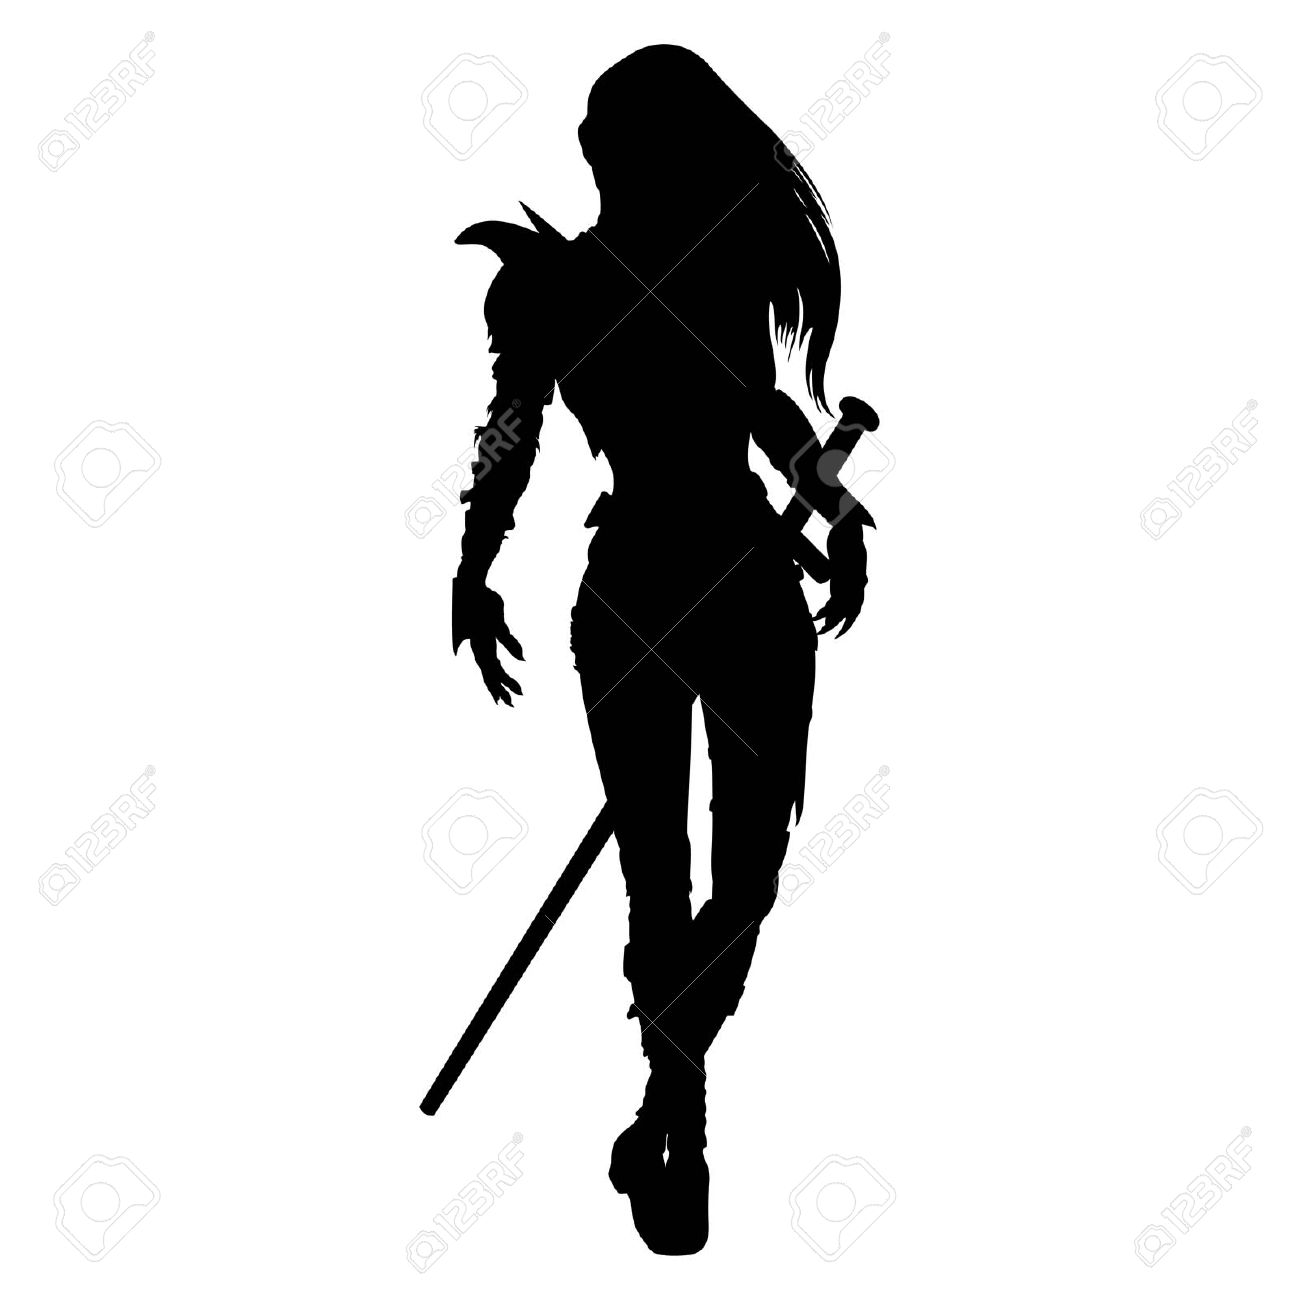 Woman Warrior clipart #9, Download drawings